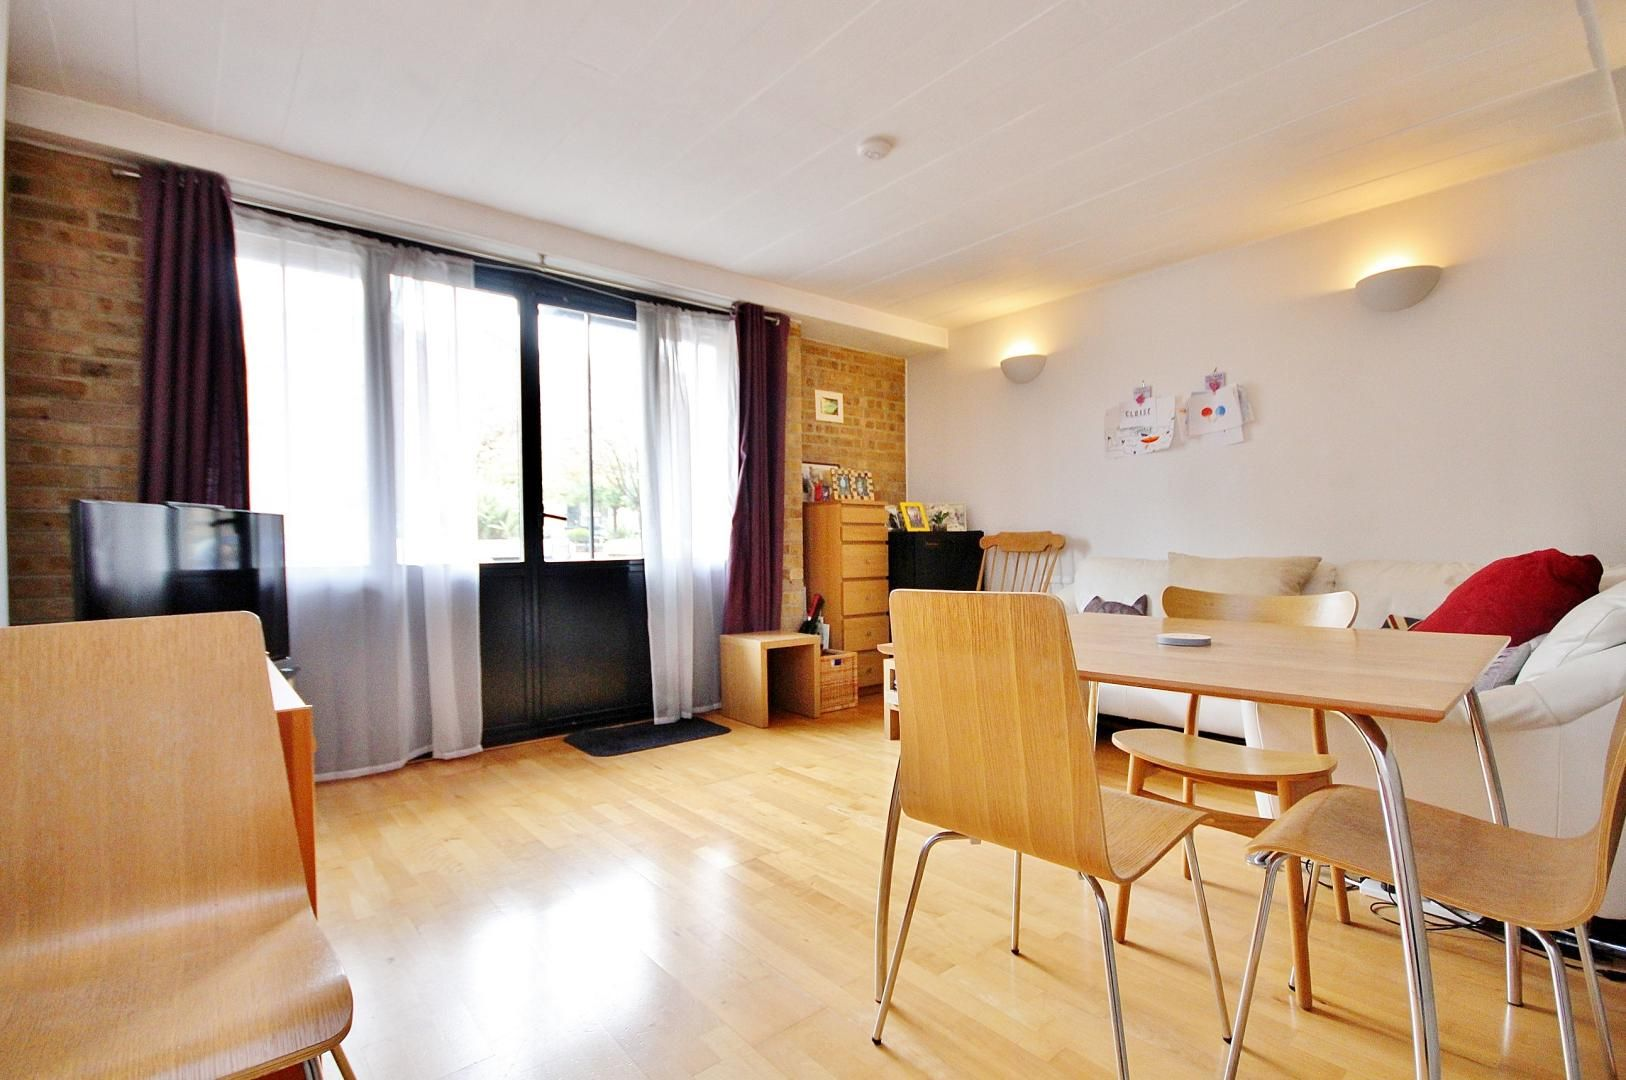 2 bed flat to rent in Beacon House, E14